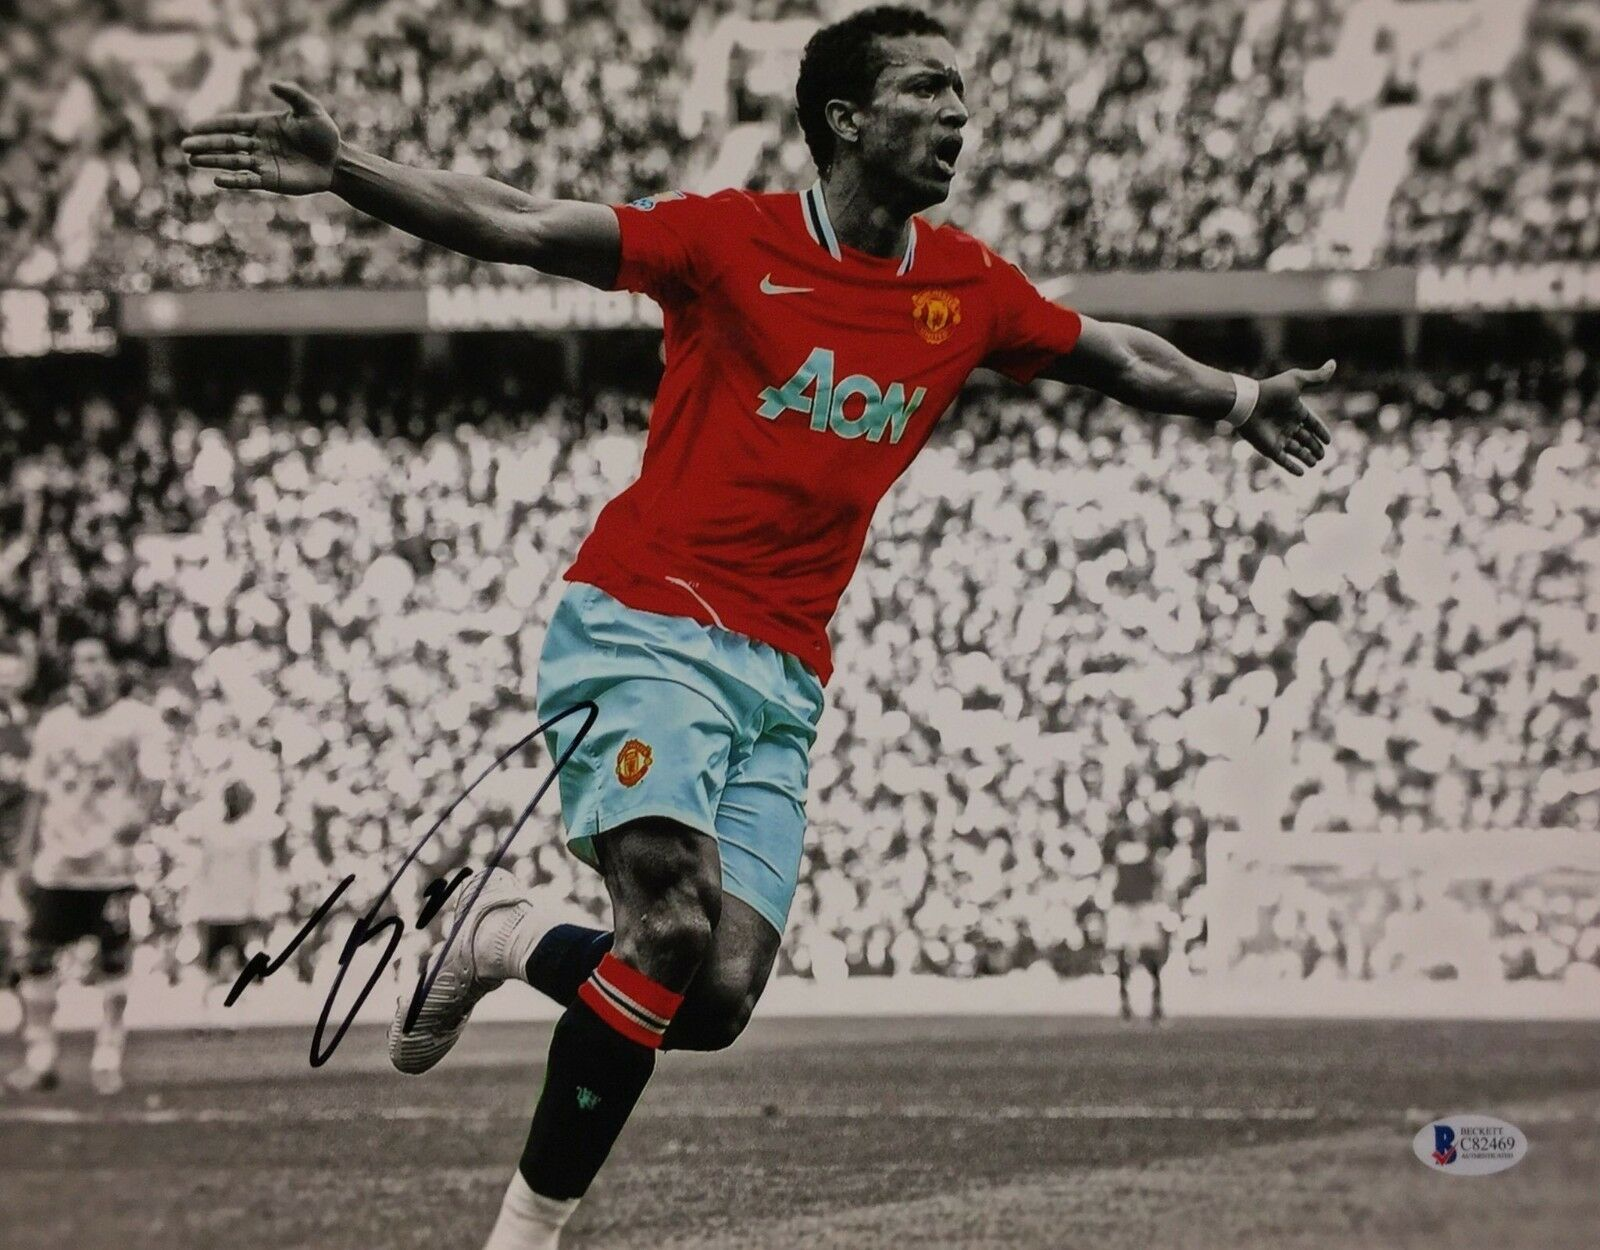 Nani Signed 11x14 Soccer Photo BAS Beckett C82469